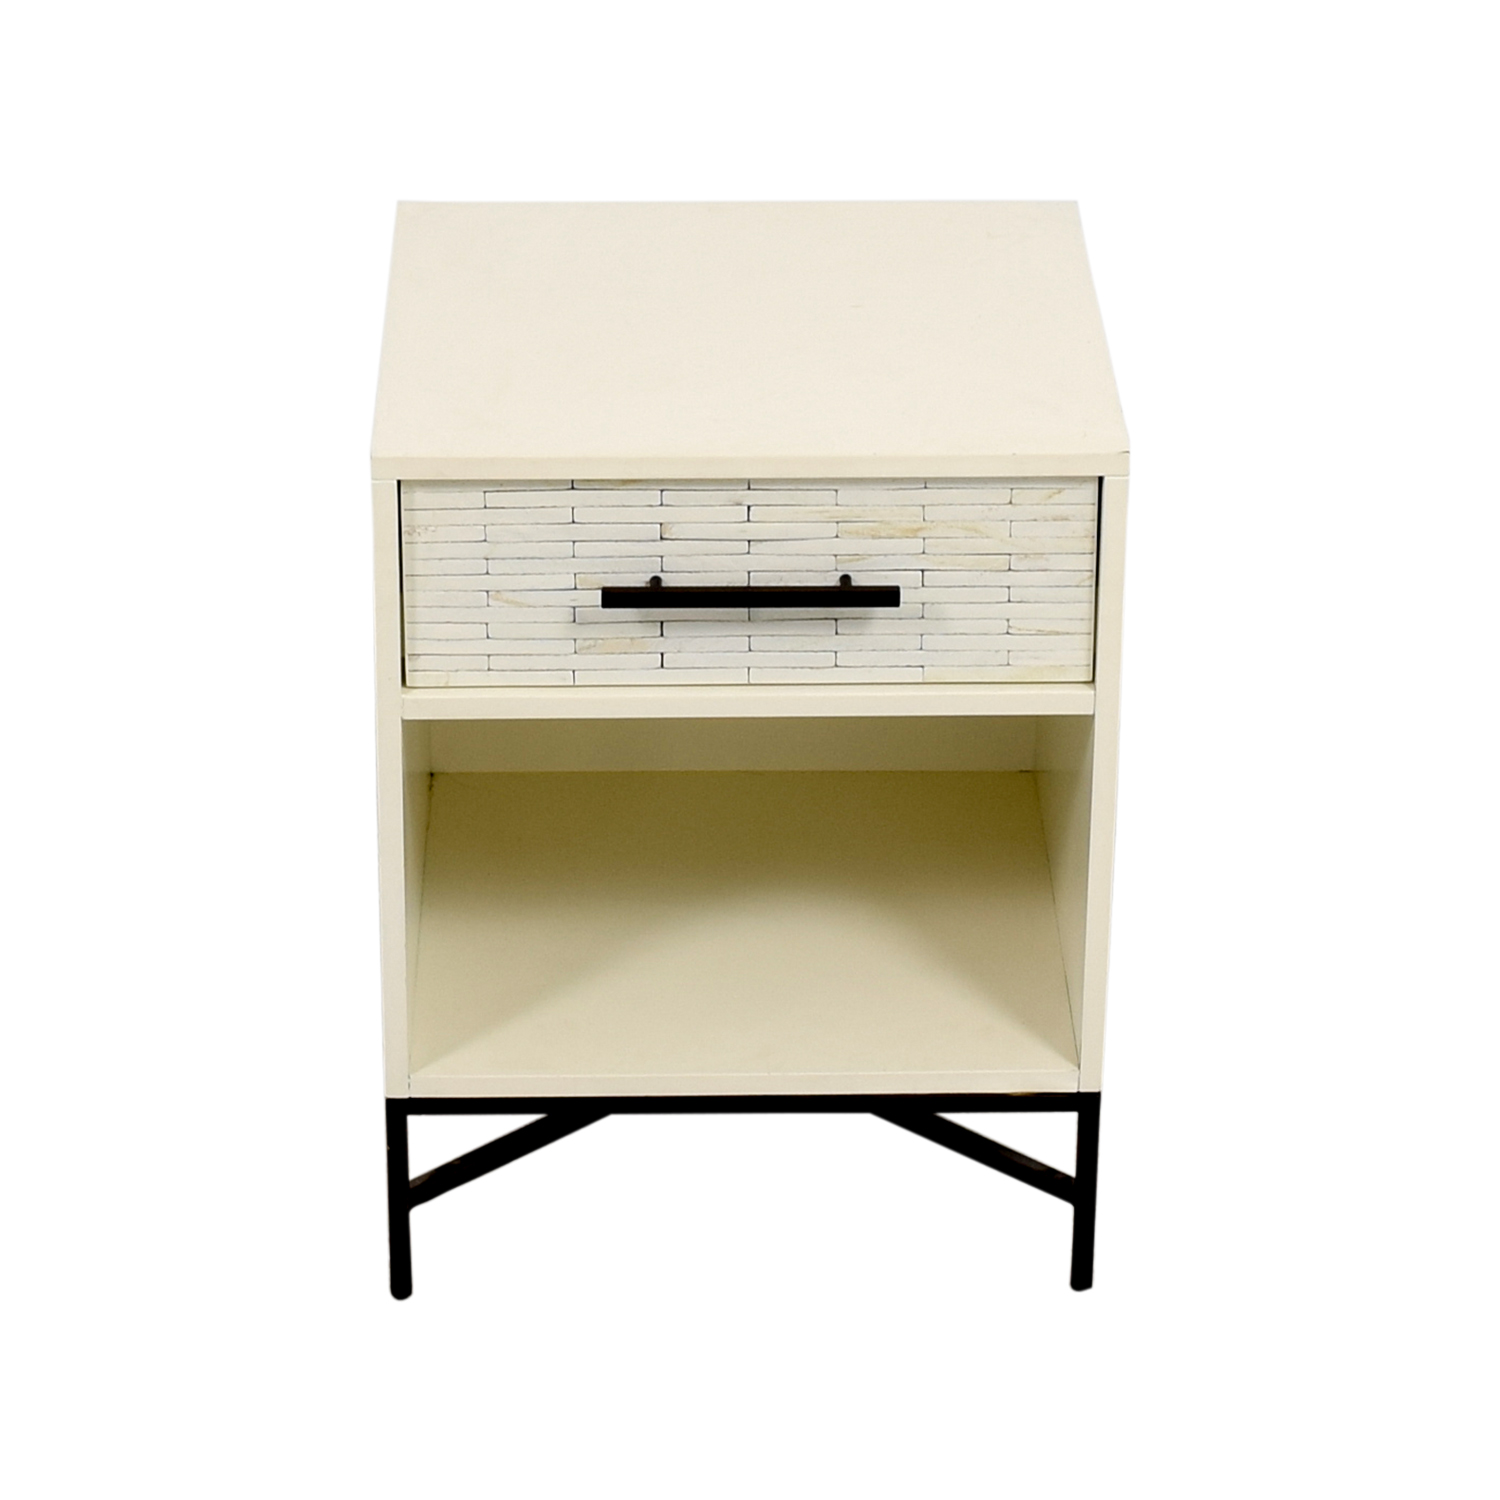 West Elm West Elm Wood-Tiled Nightstand Tables